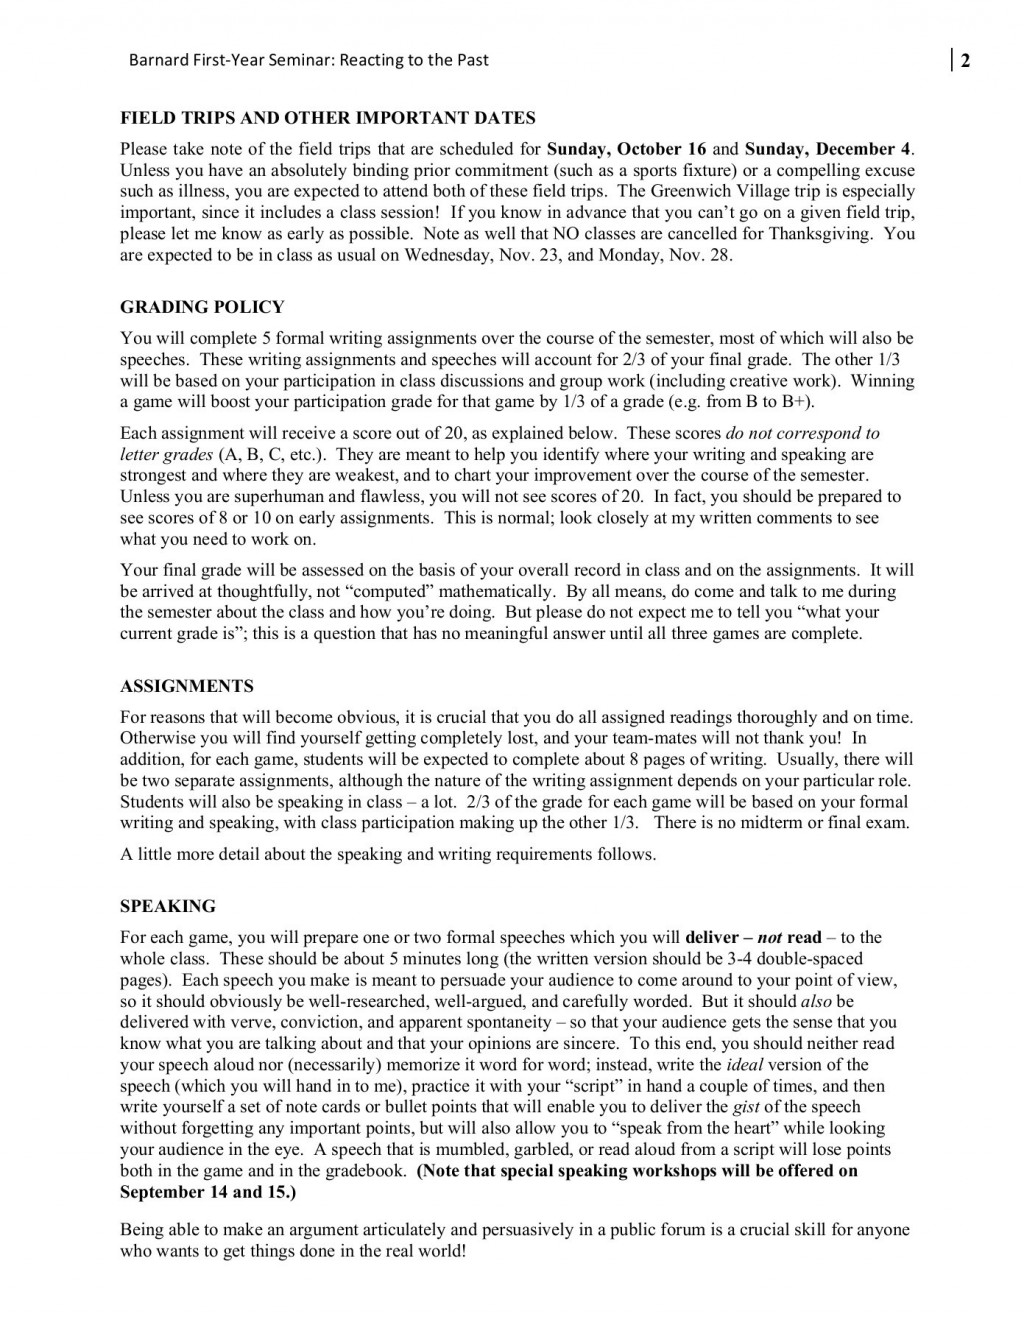 009 Medical Controversial Topics For Research Paper Best Large